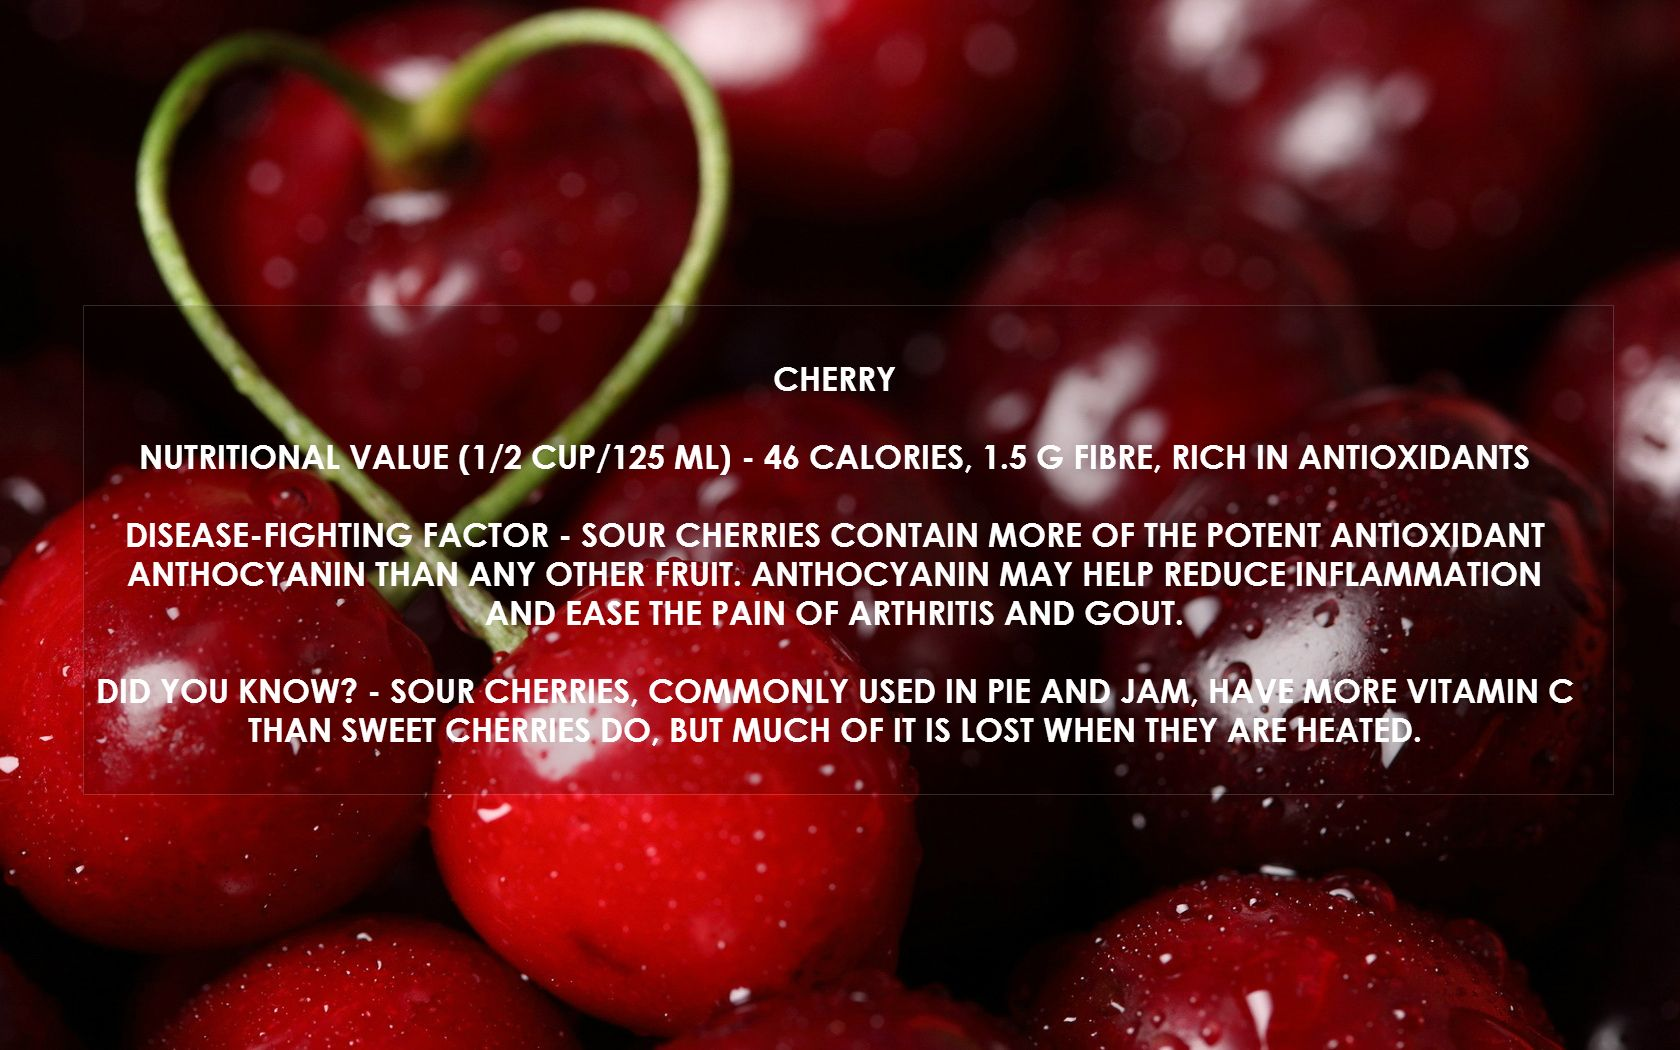 We All Love Sweet Sweet Cherries But Did You Know That Sour Cherries Contain More Of The Potent Antioxidant Anthocyanin Than Superfruit Fruit Sweet Cherries